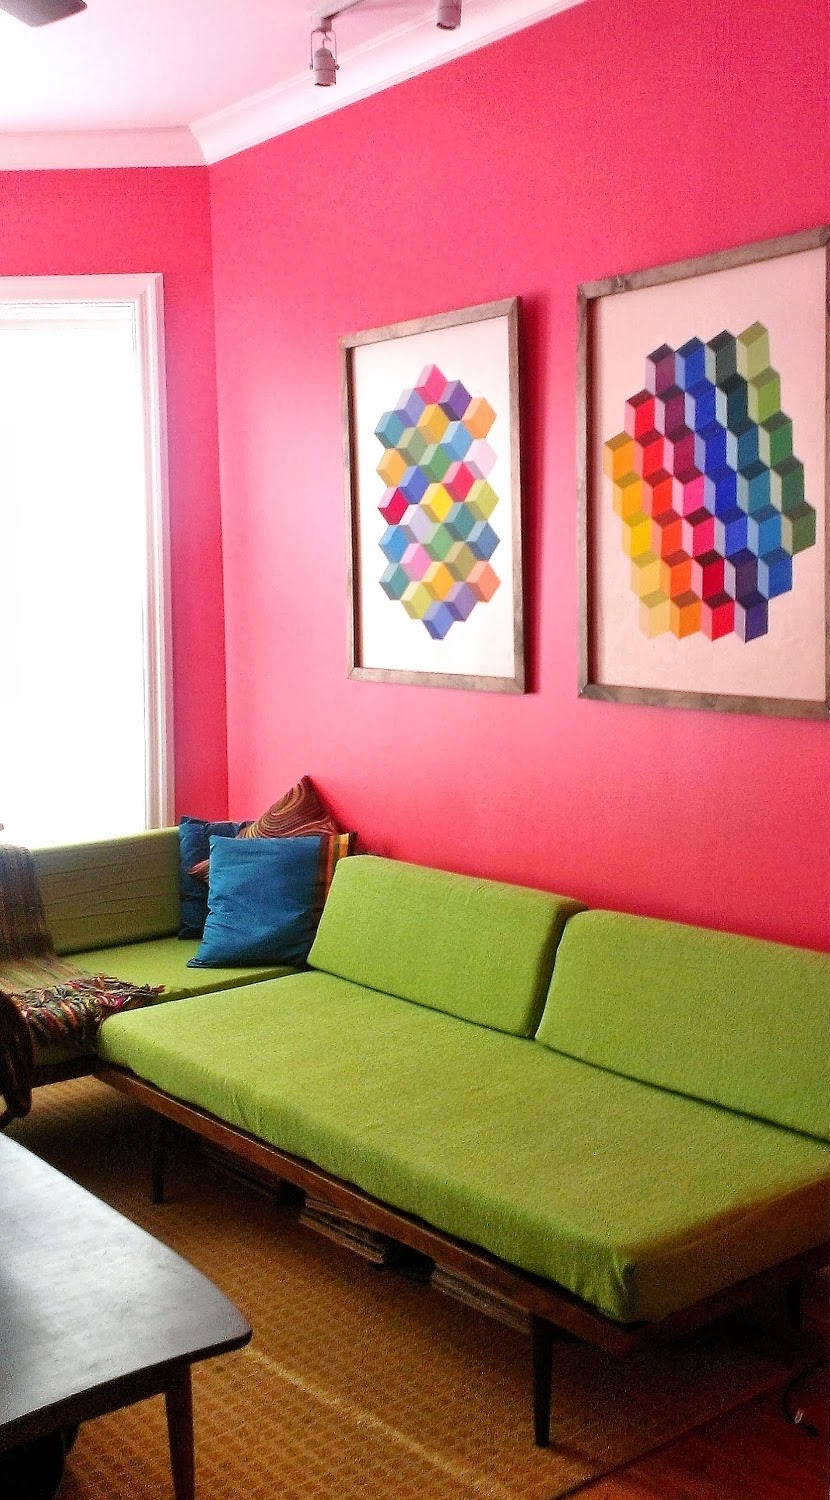 Apartment 528: Living Room Color Change